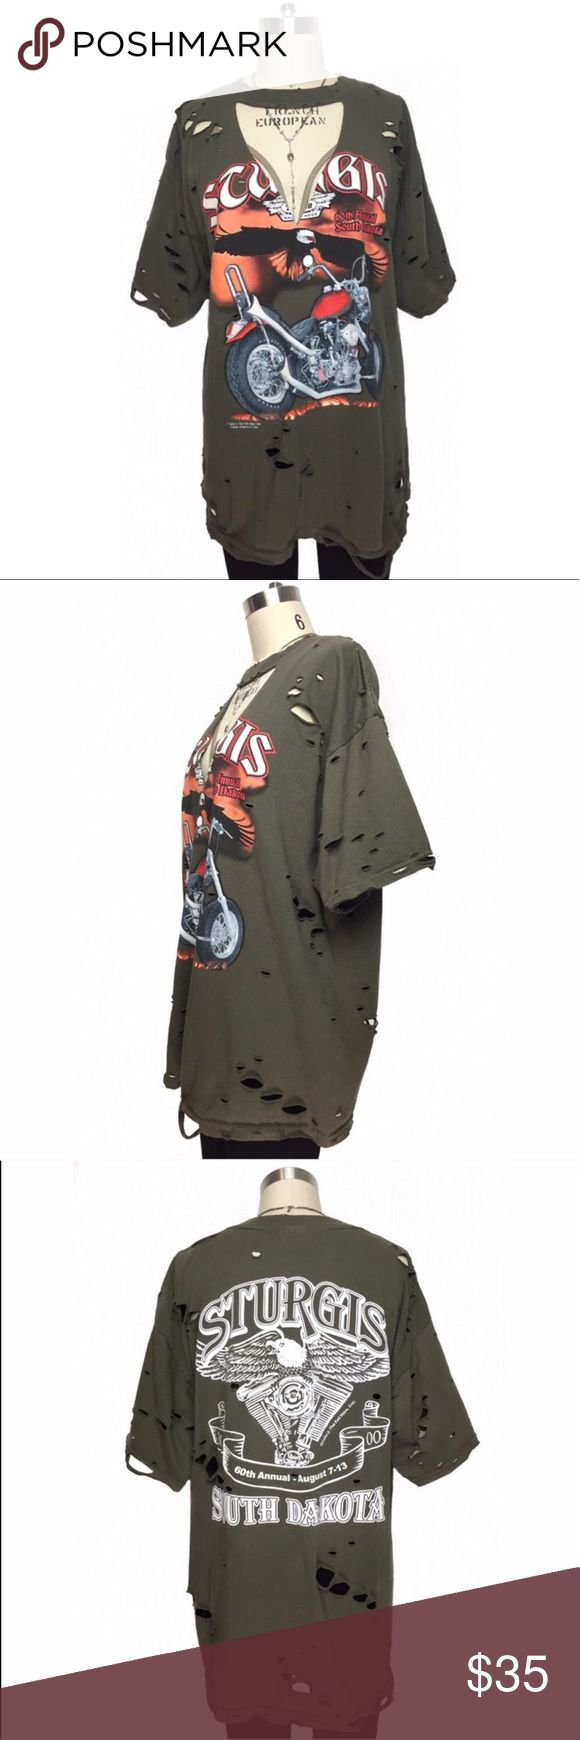 Vintage Distressed Sturgis Motorcycle Tee Excellent condition. As seen in photos. Color: Olive Tops Tees - Short Sleeve